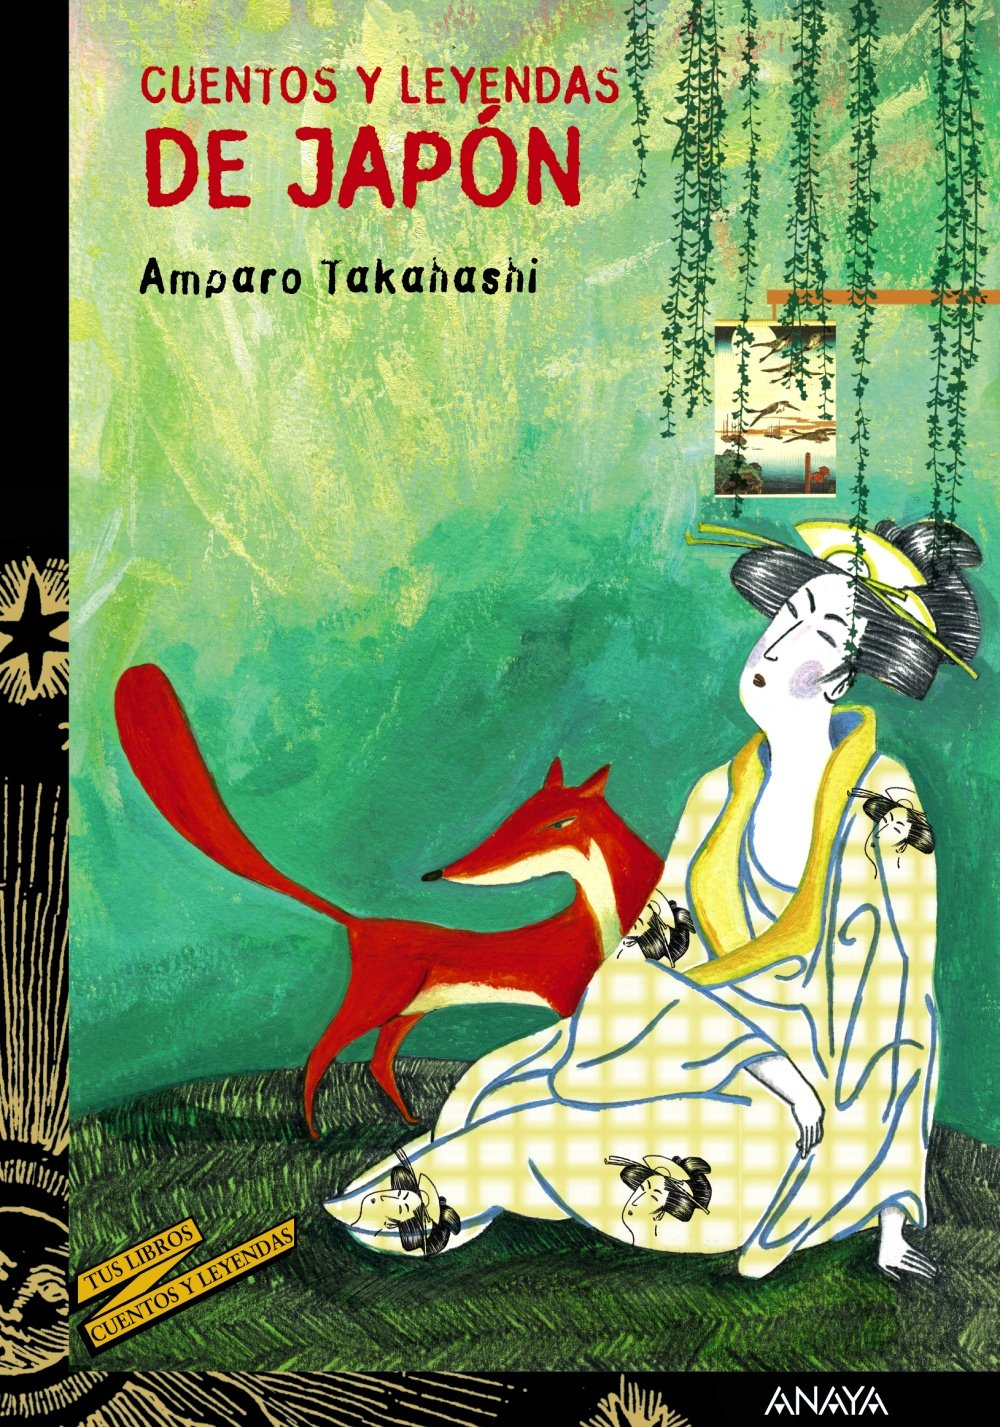 Download Cuentos y leyendas de Japon/ Tales and Legends of Japan (Cuentos Y Leyendas/ Tales and Legends) (Spanish Edition) pdf